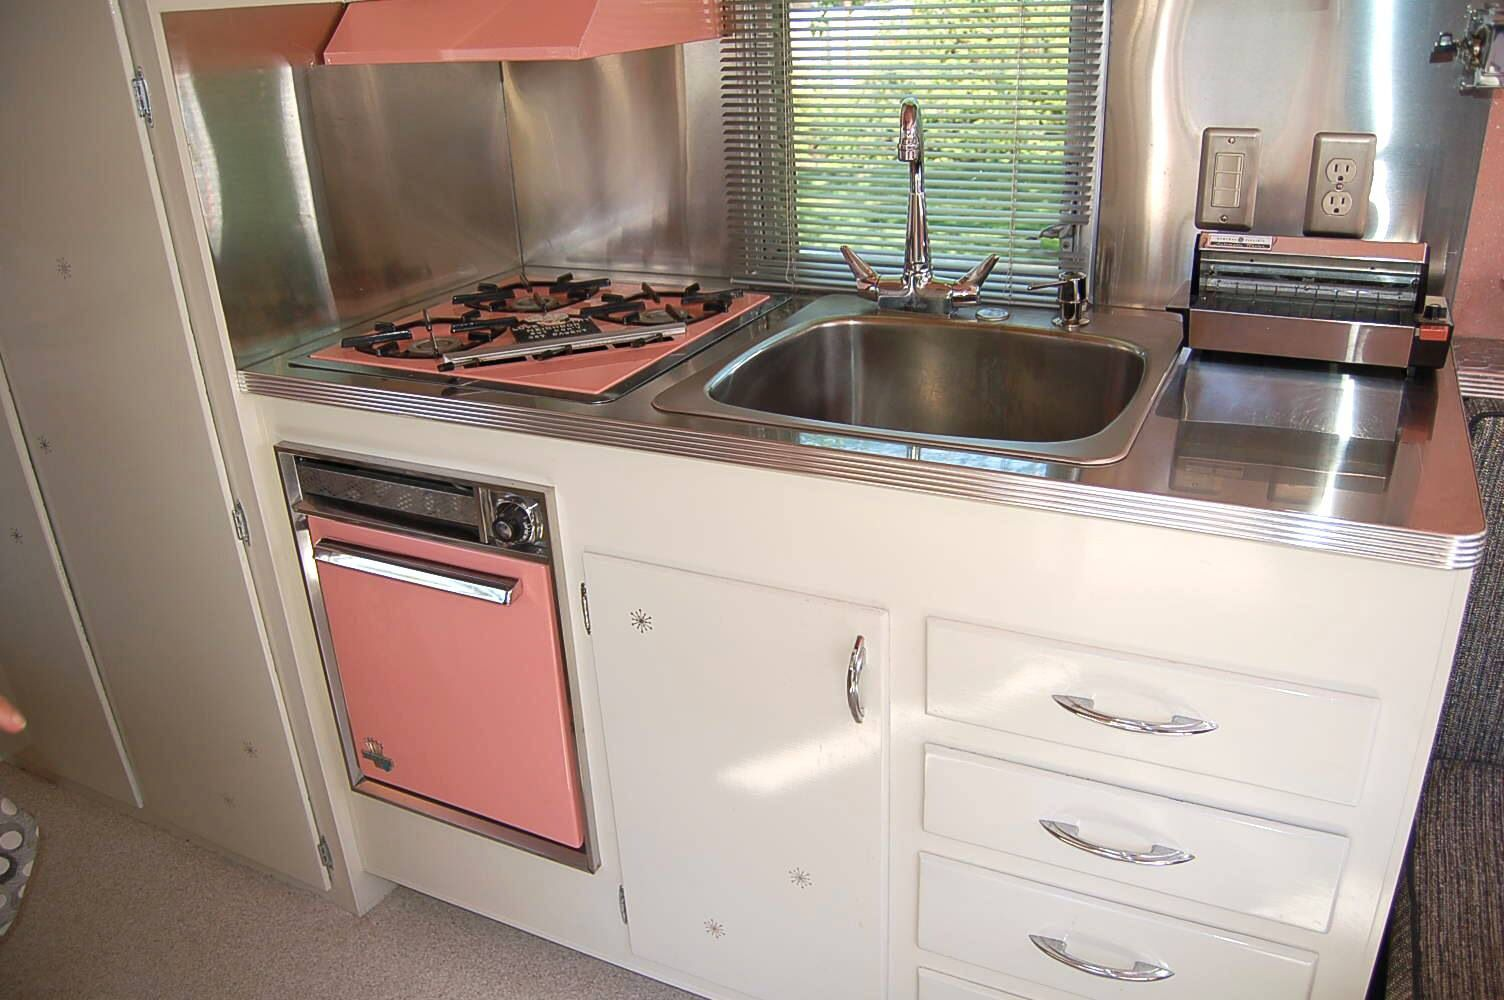 1961 Holiday Interior Kitchen Cabinets For Sale Vintage Kitchen Cabinets Holiday Trailer